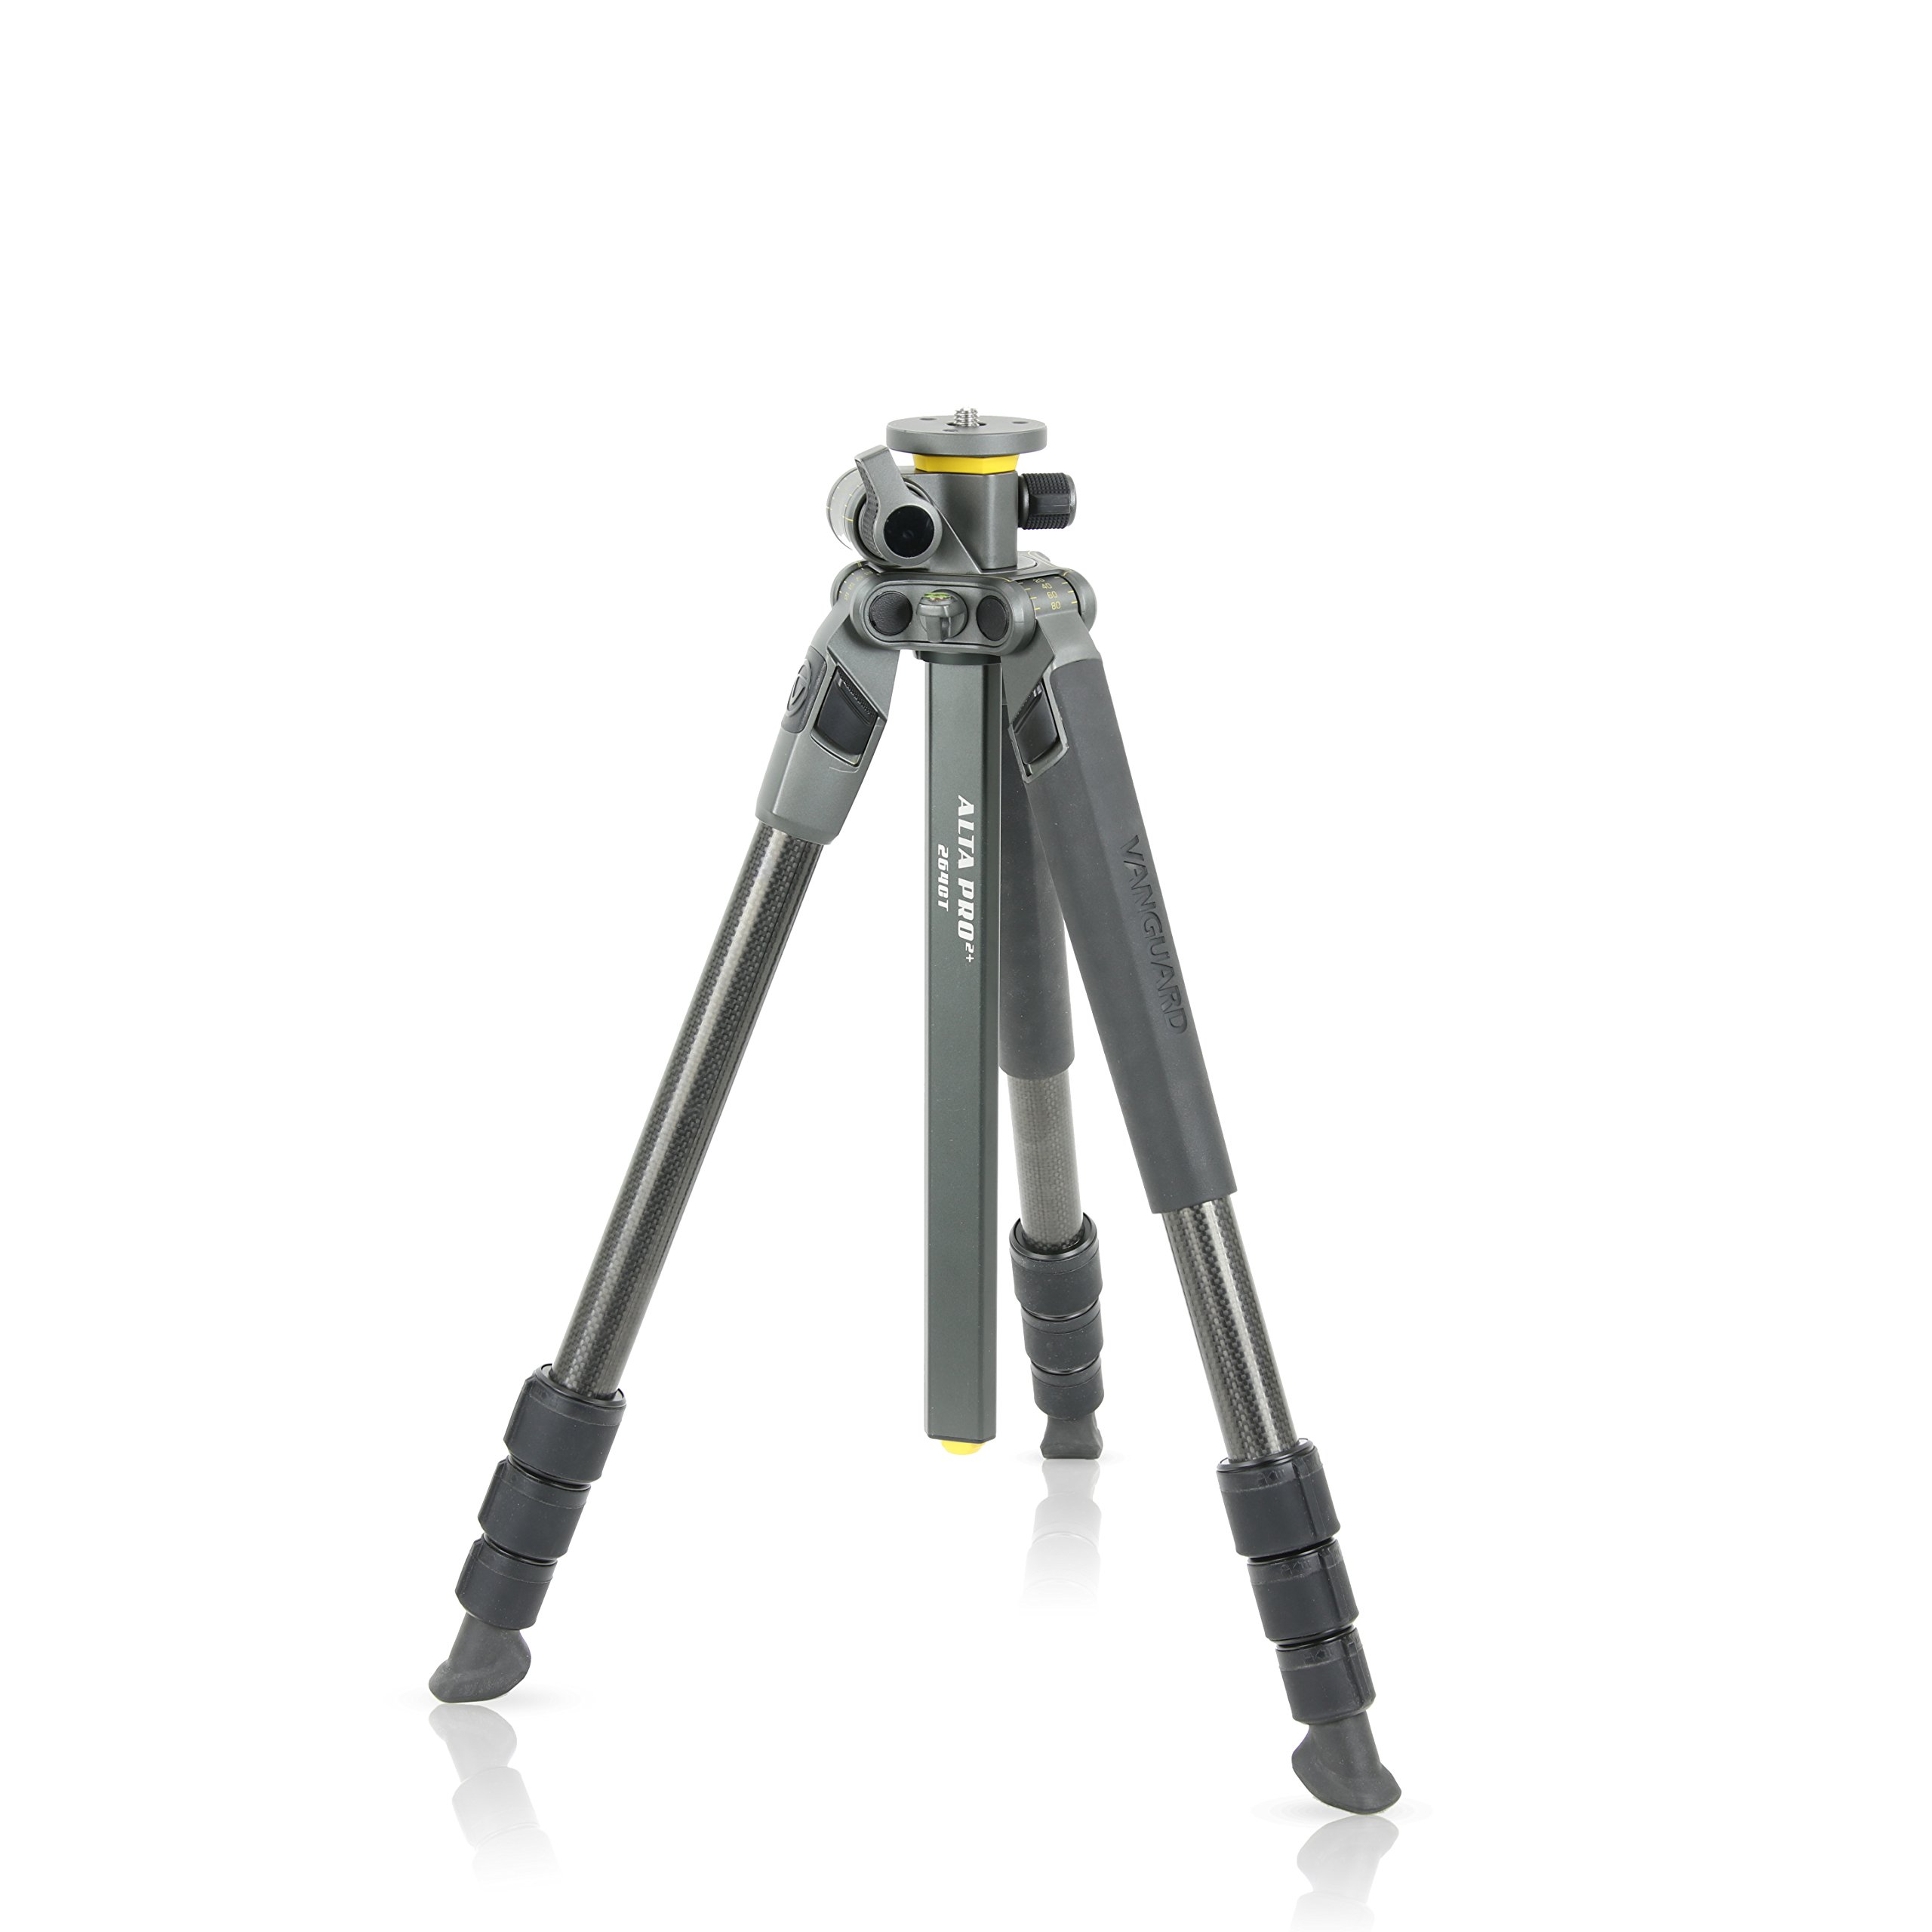 Vanguard Alta Pro 2+ 264CT Carbon Fiber Tripod, Multi-Angle Center Column, for Sony, Nikon, Canon DSLR Cameras